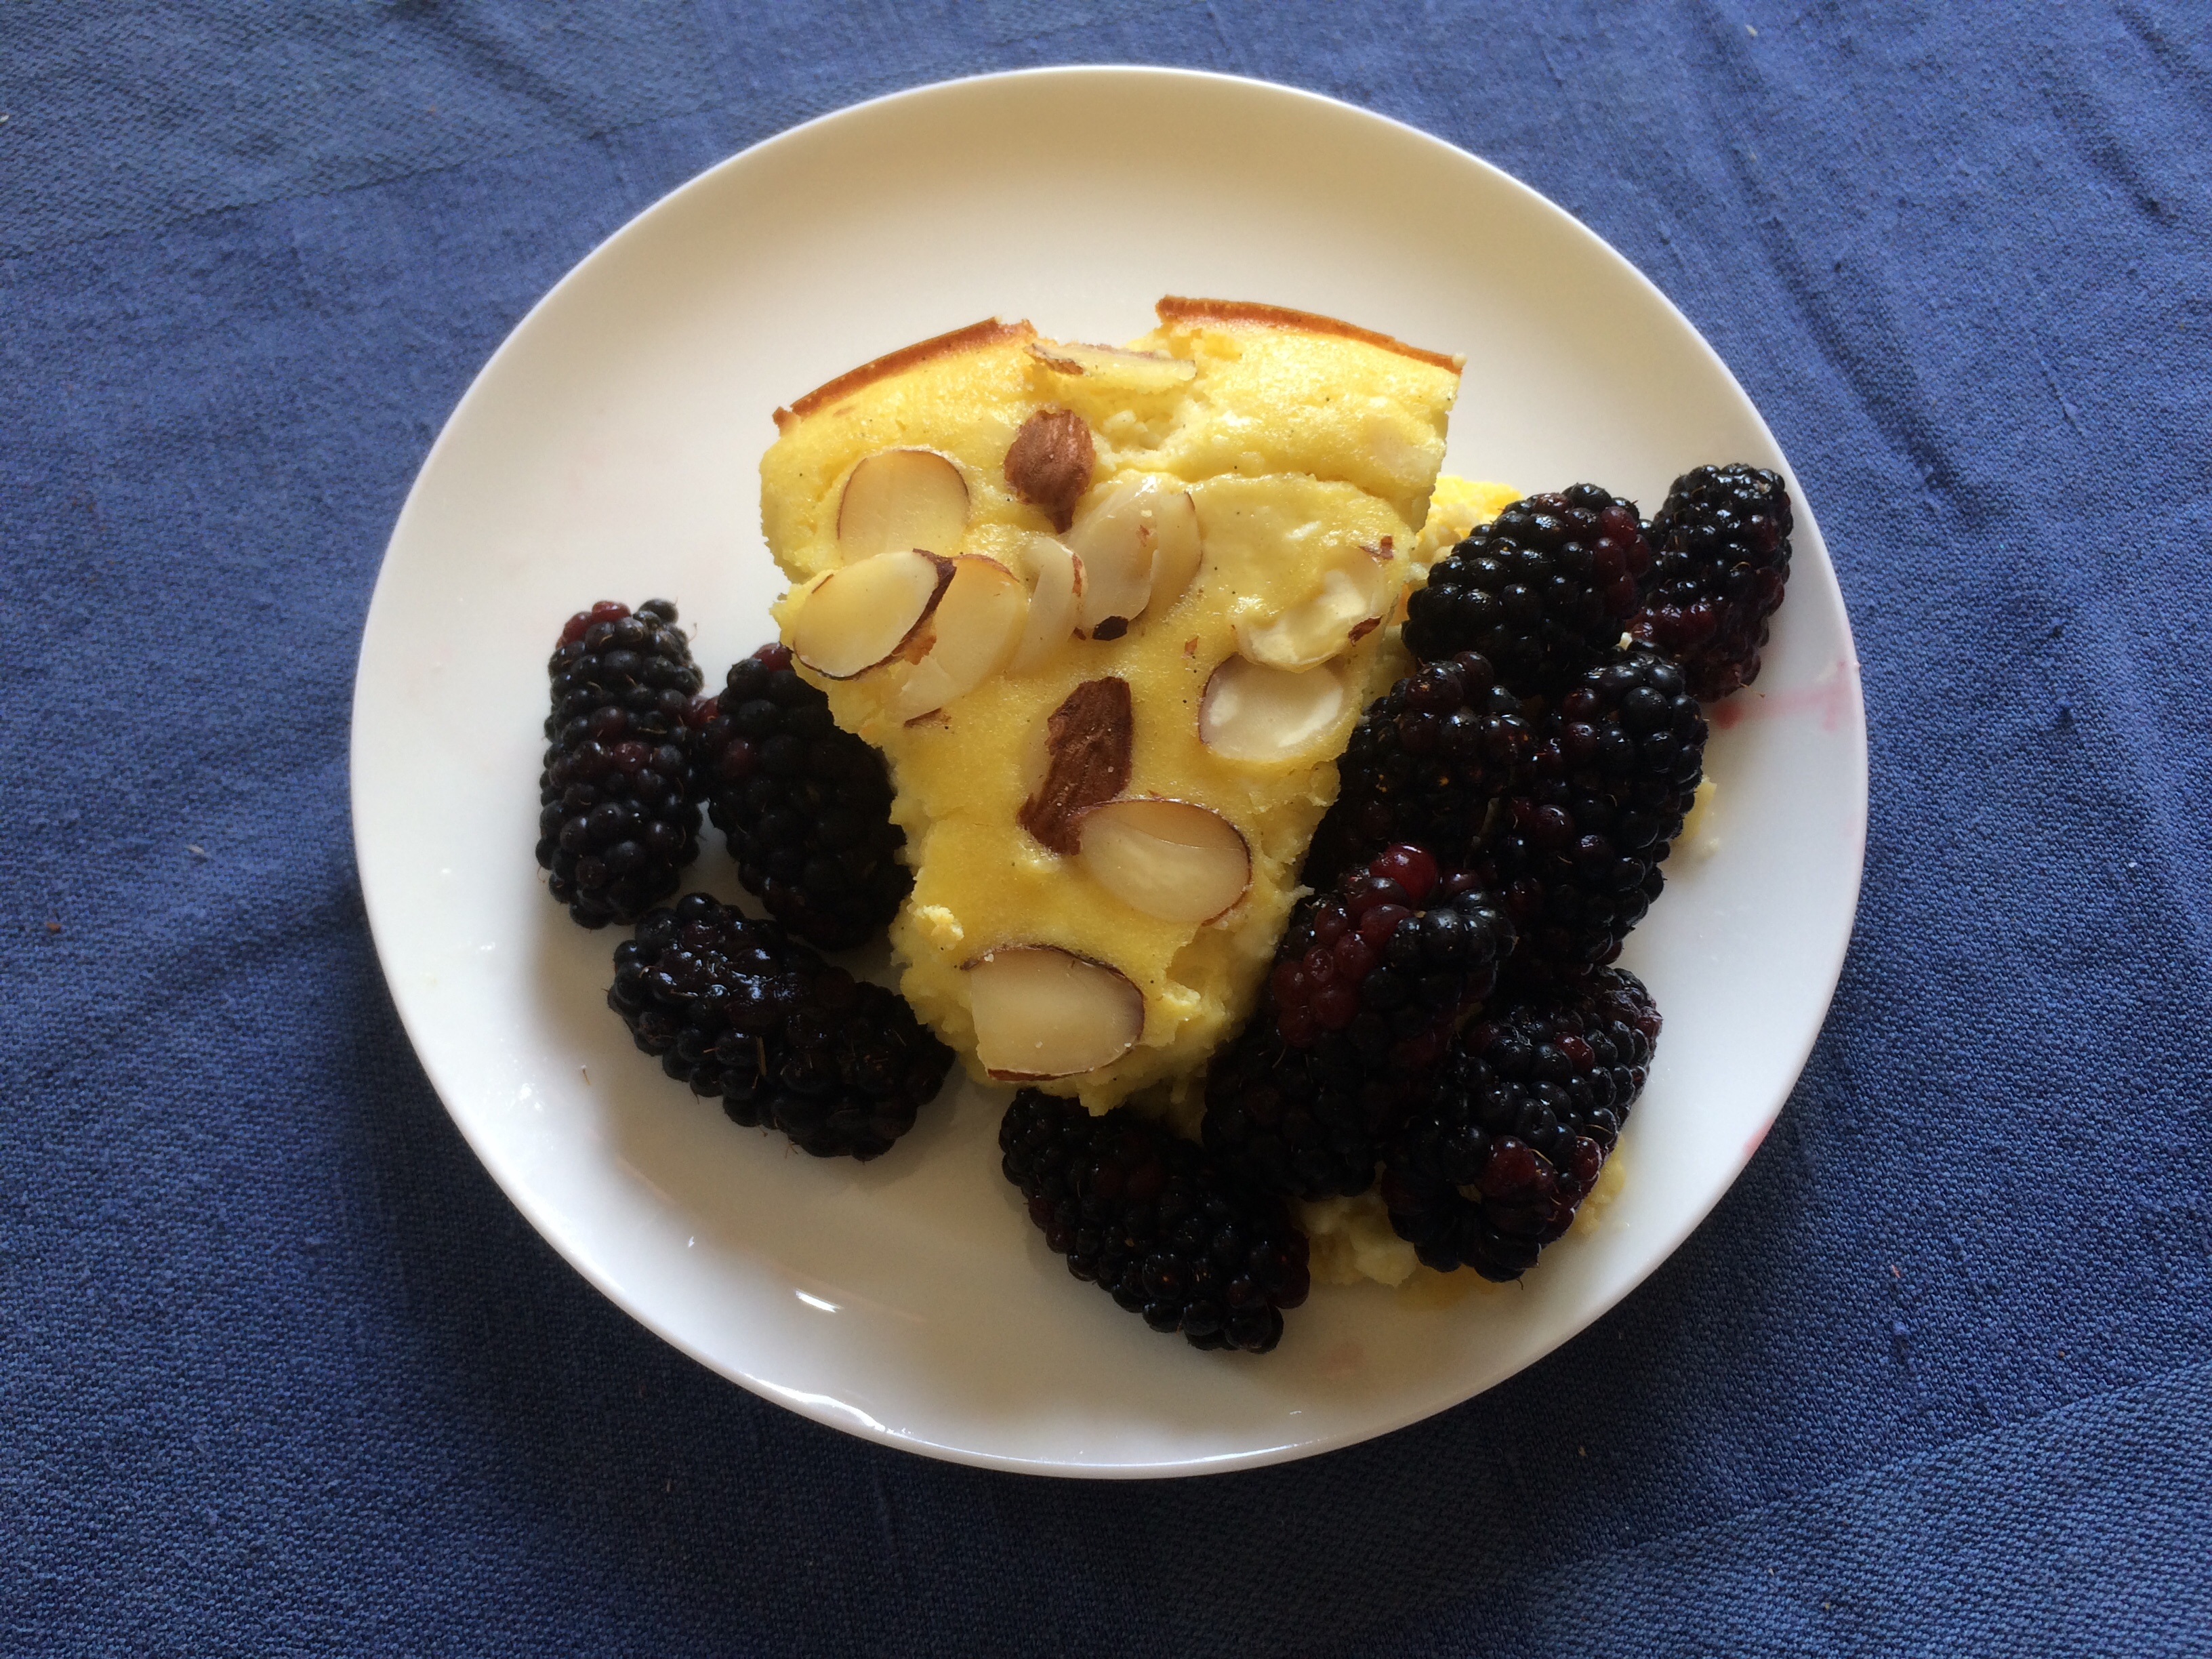 Curd cake and boysenberries